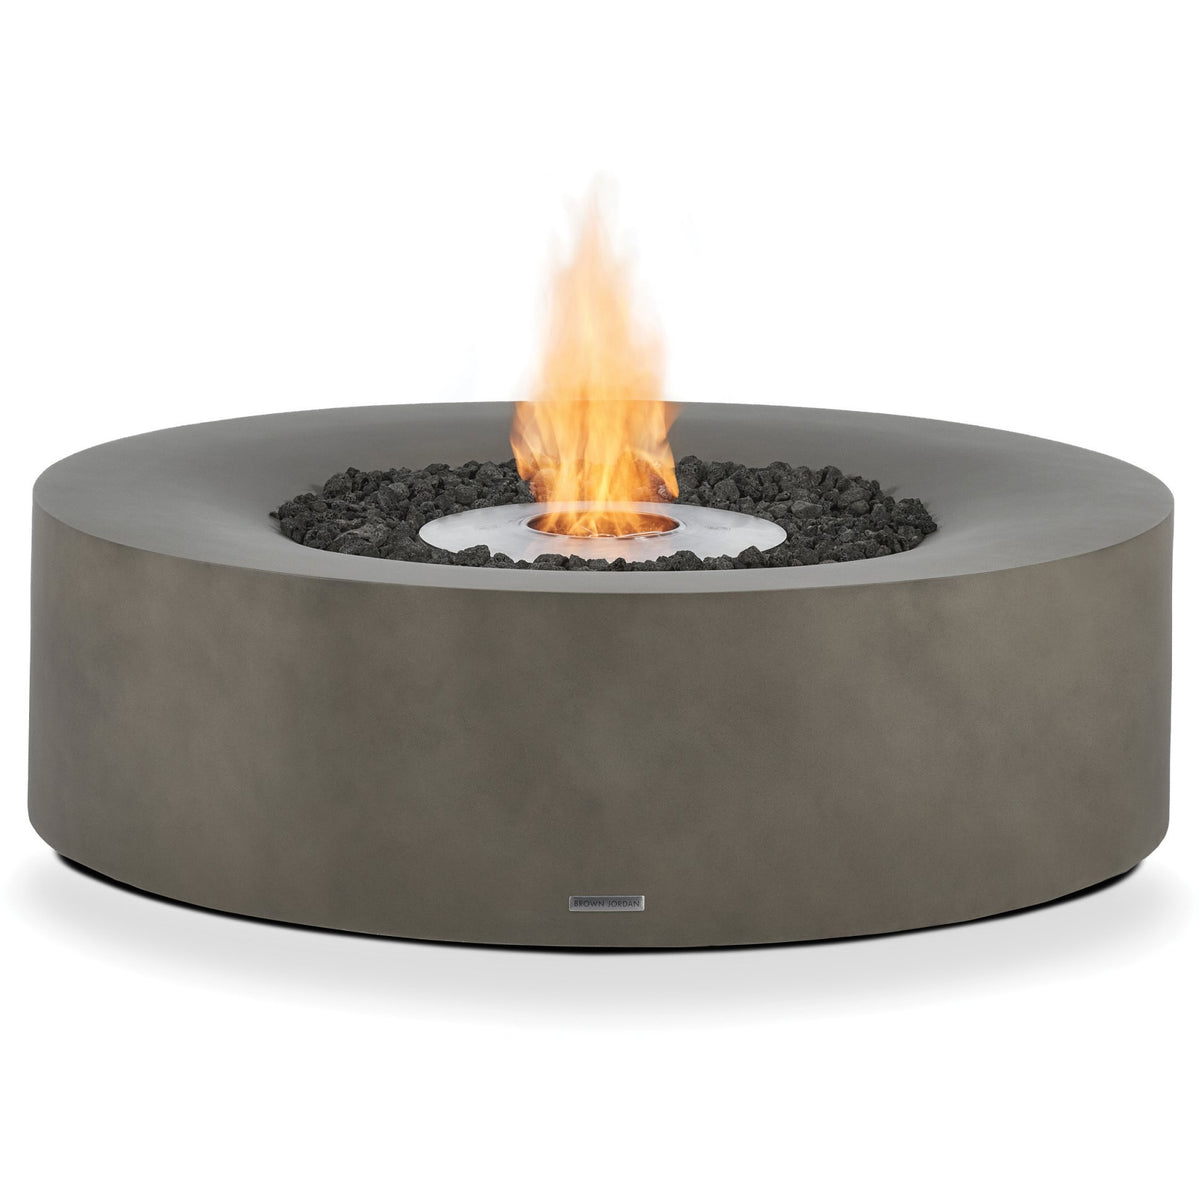 Kove Ethanol Fire Table - Outdoor Living Essentials